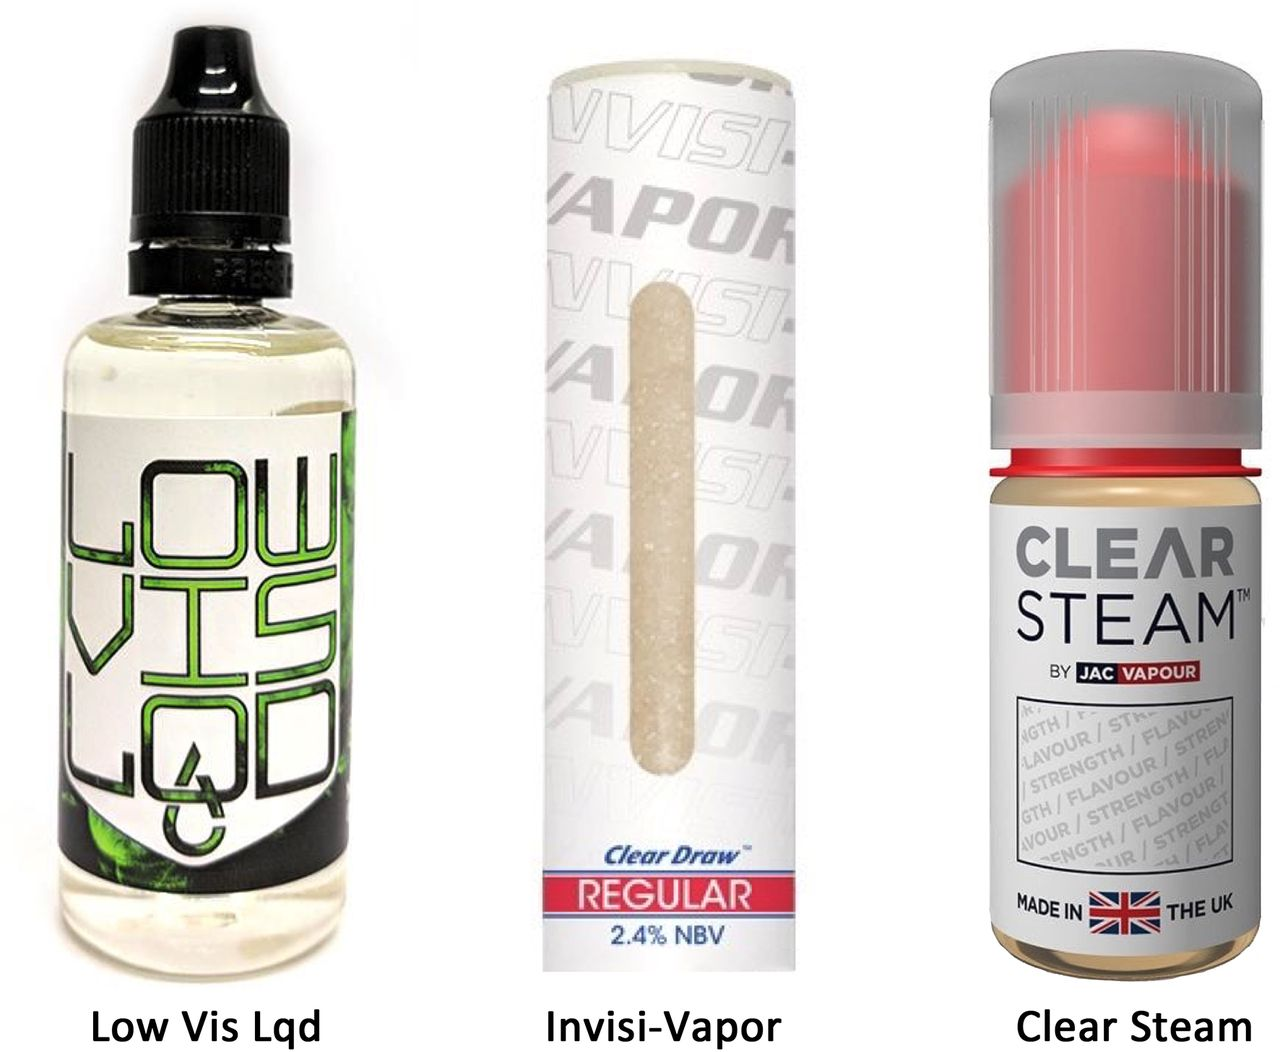 JUUL and other stealth vaporisers: hiding the habit from